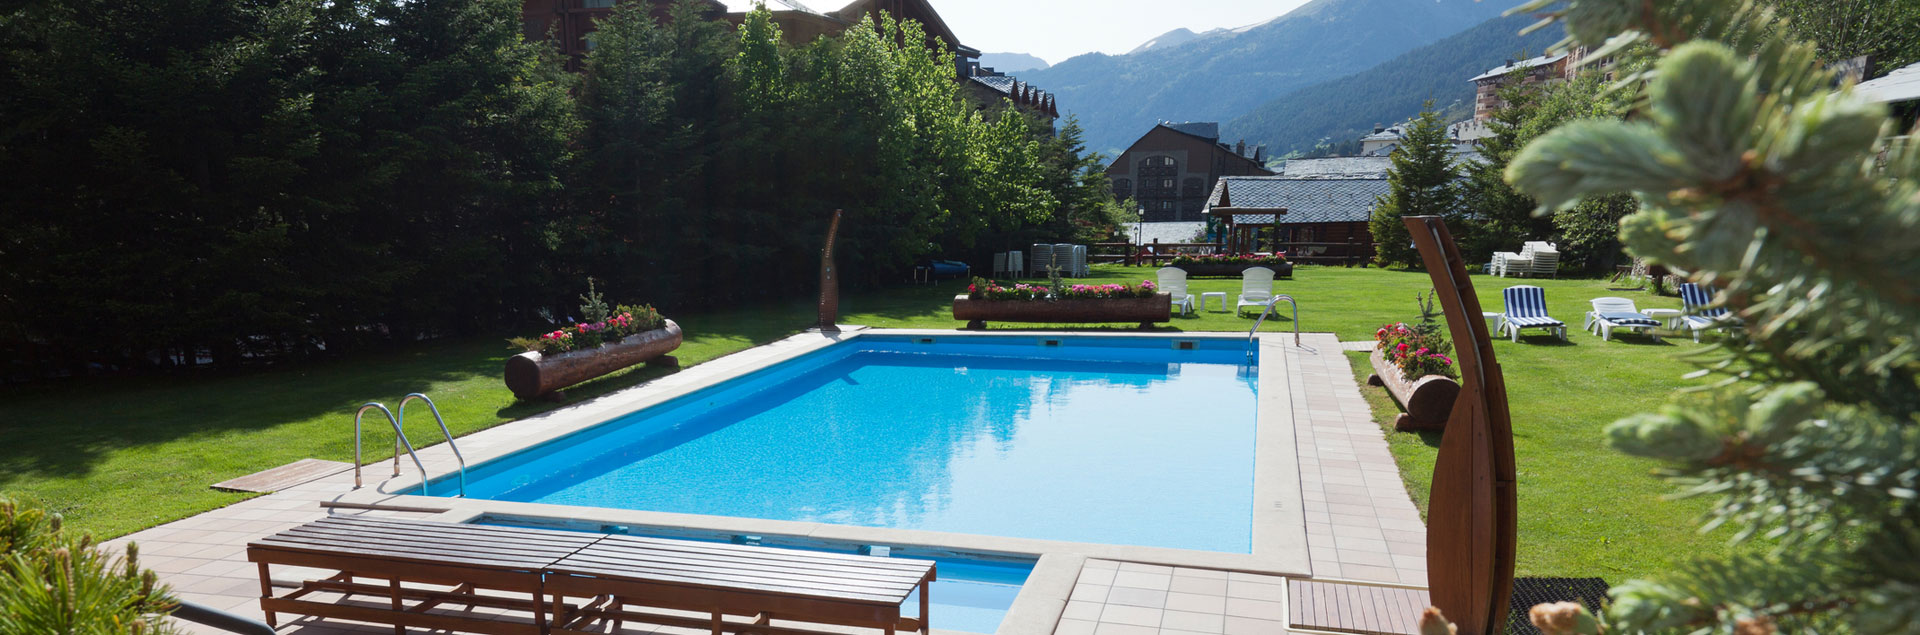 Piscine ext rieure sport hotels andorre for La piscine online